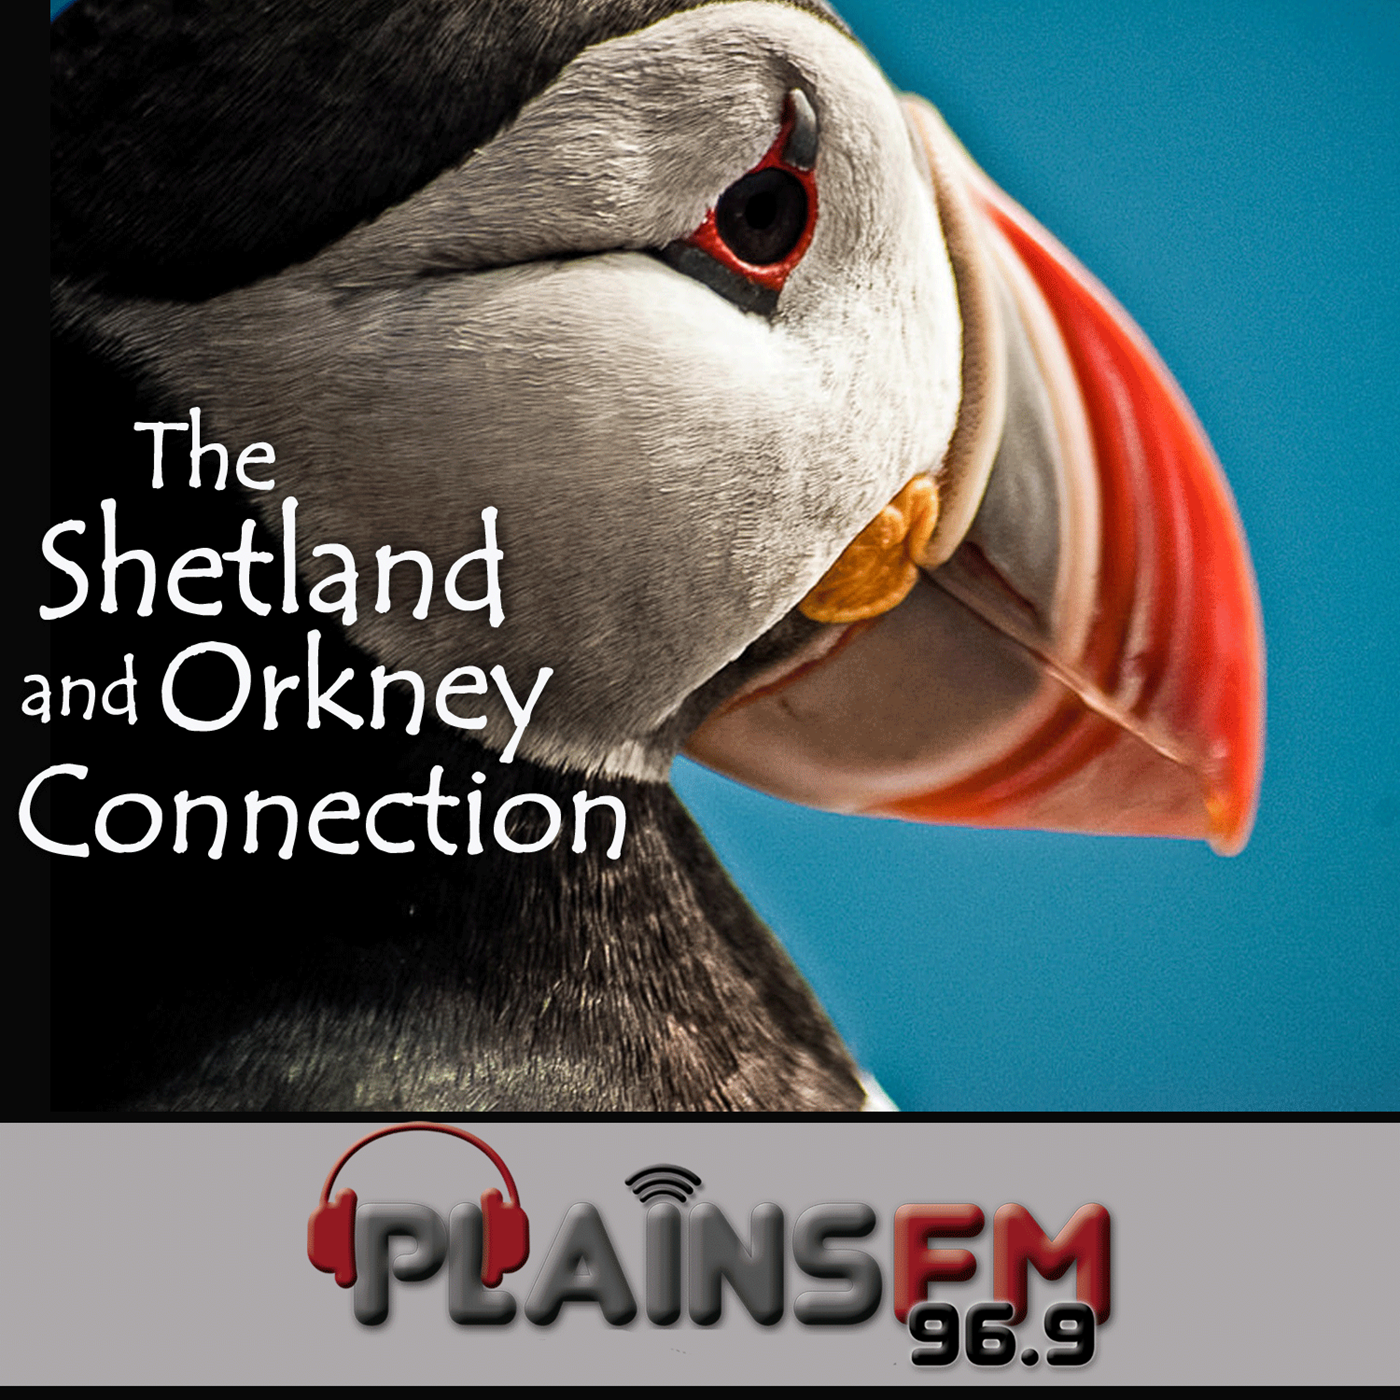 The Shetland and Orkney Connection - Books, Dialects and Language